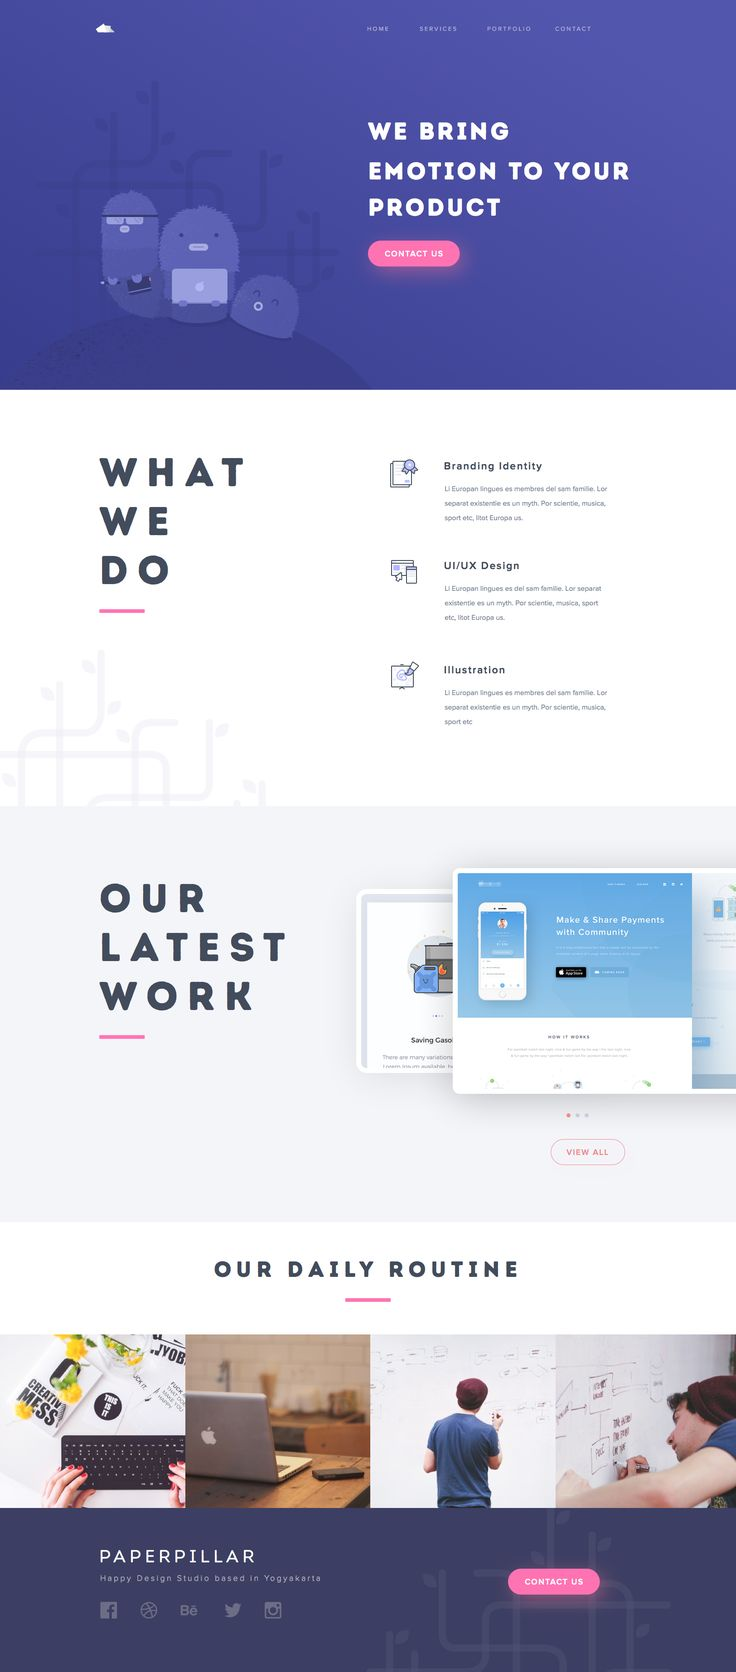 Dribbble - desktop_hd.png by Ghani Pradita